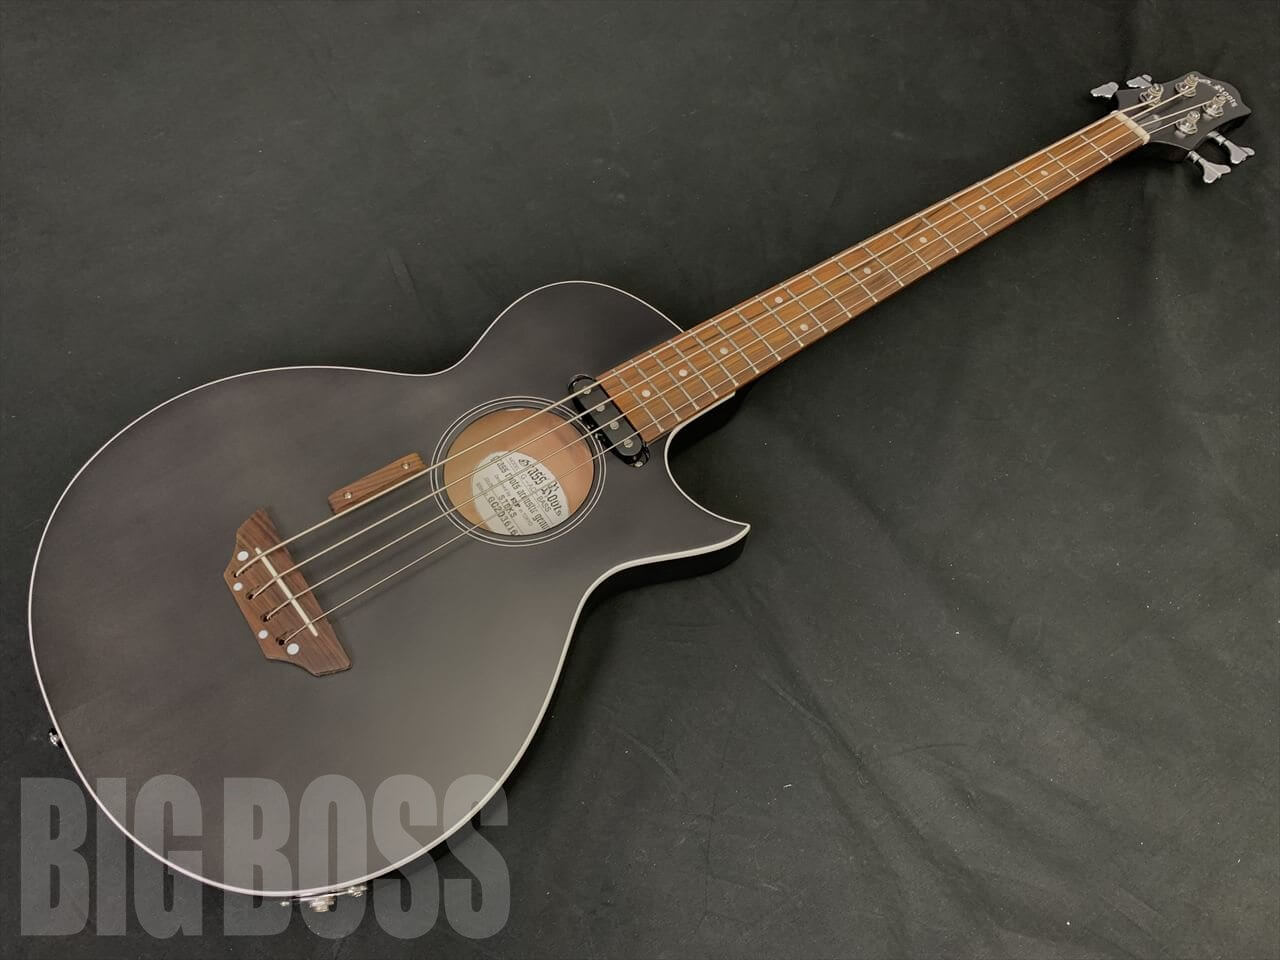 【即納可能】GrassRoots(グラスルーツ) G-AC-BASS / See Thru Black Satin